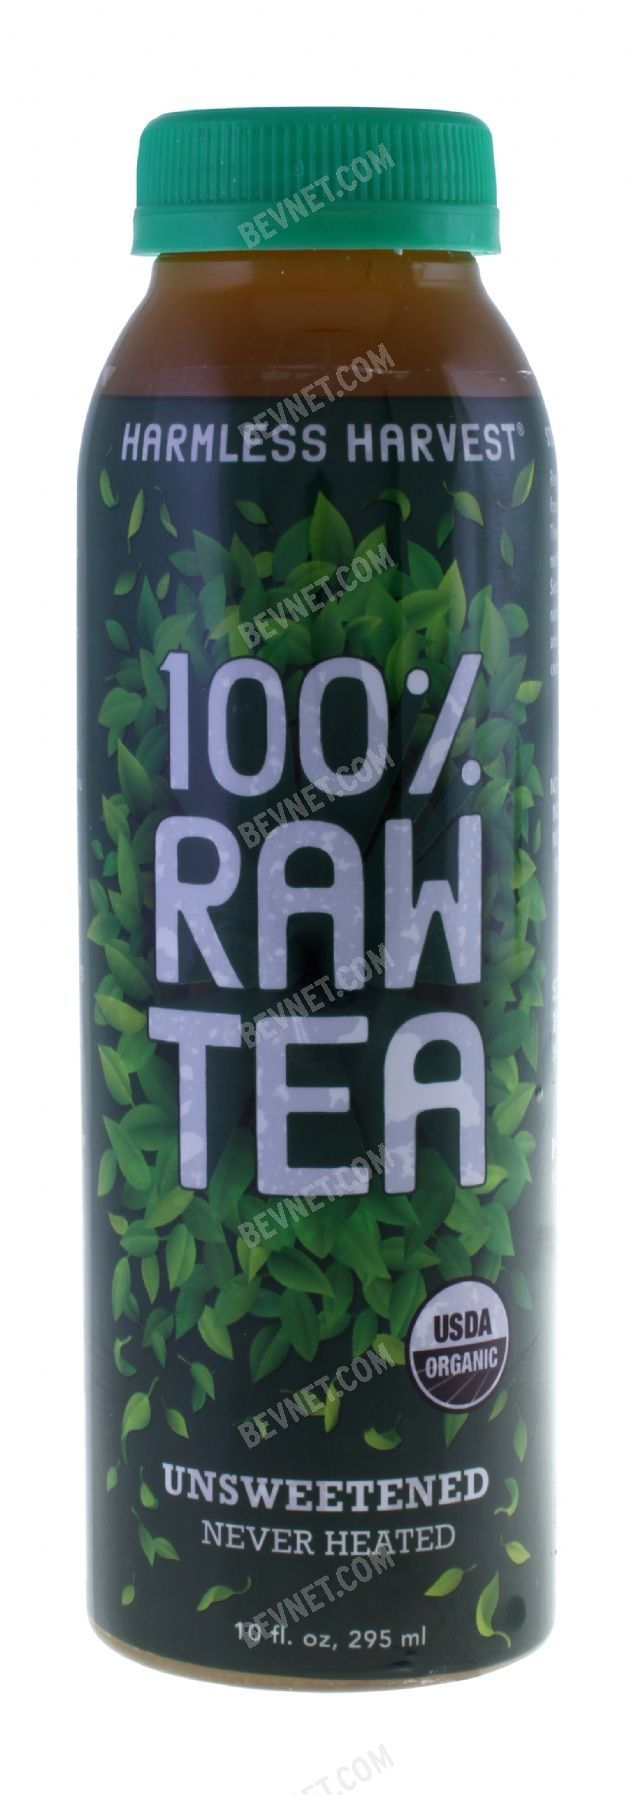 Harmless Harvest Raw Tea: